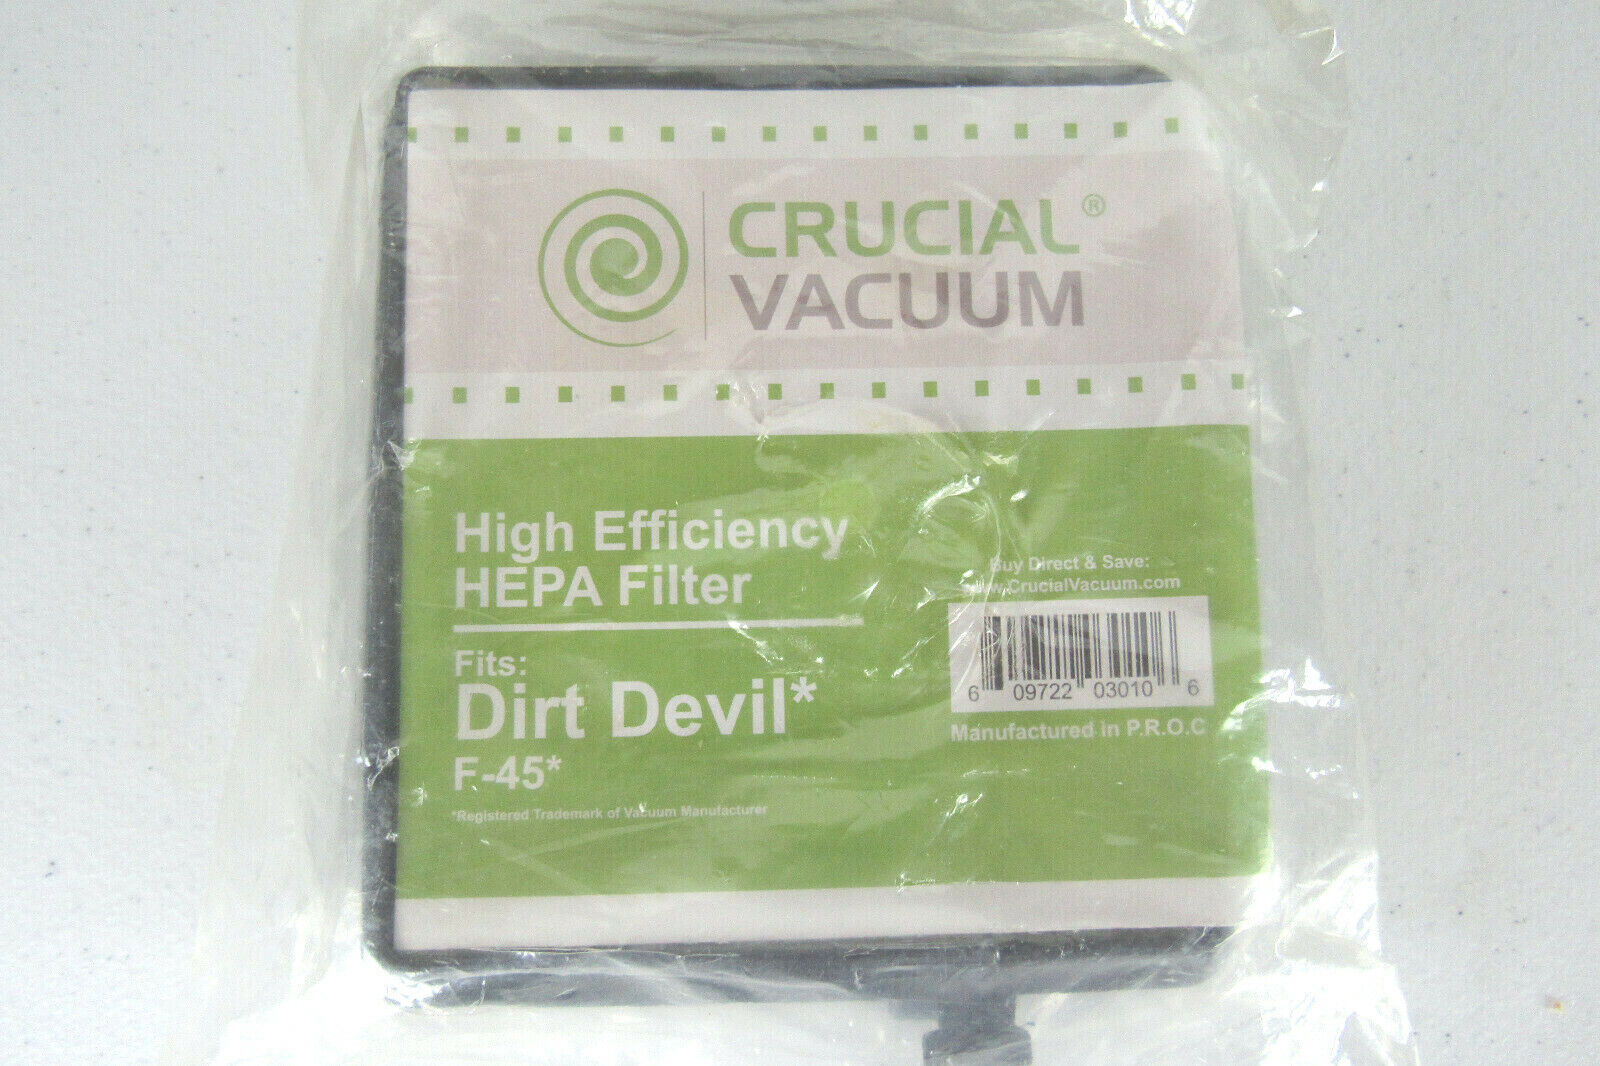 Dirt Devil F45 Canister Filter, Part # 2KQ0107000